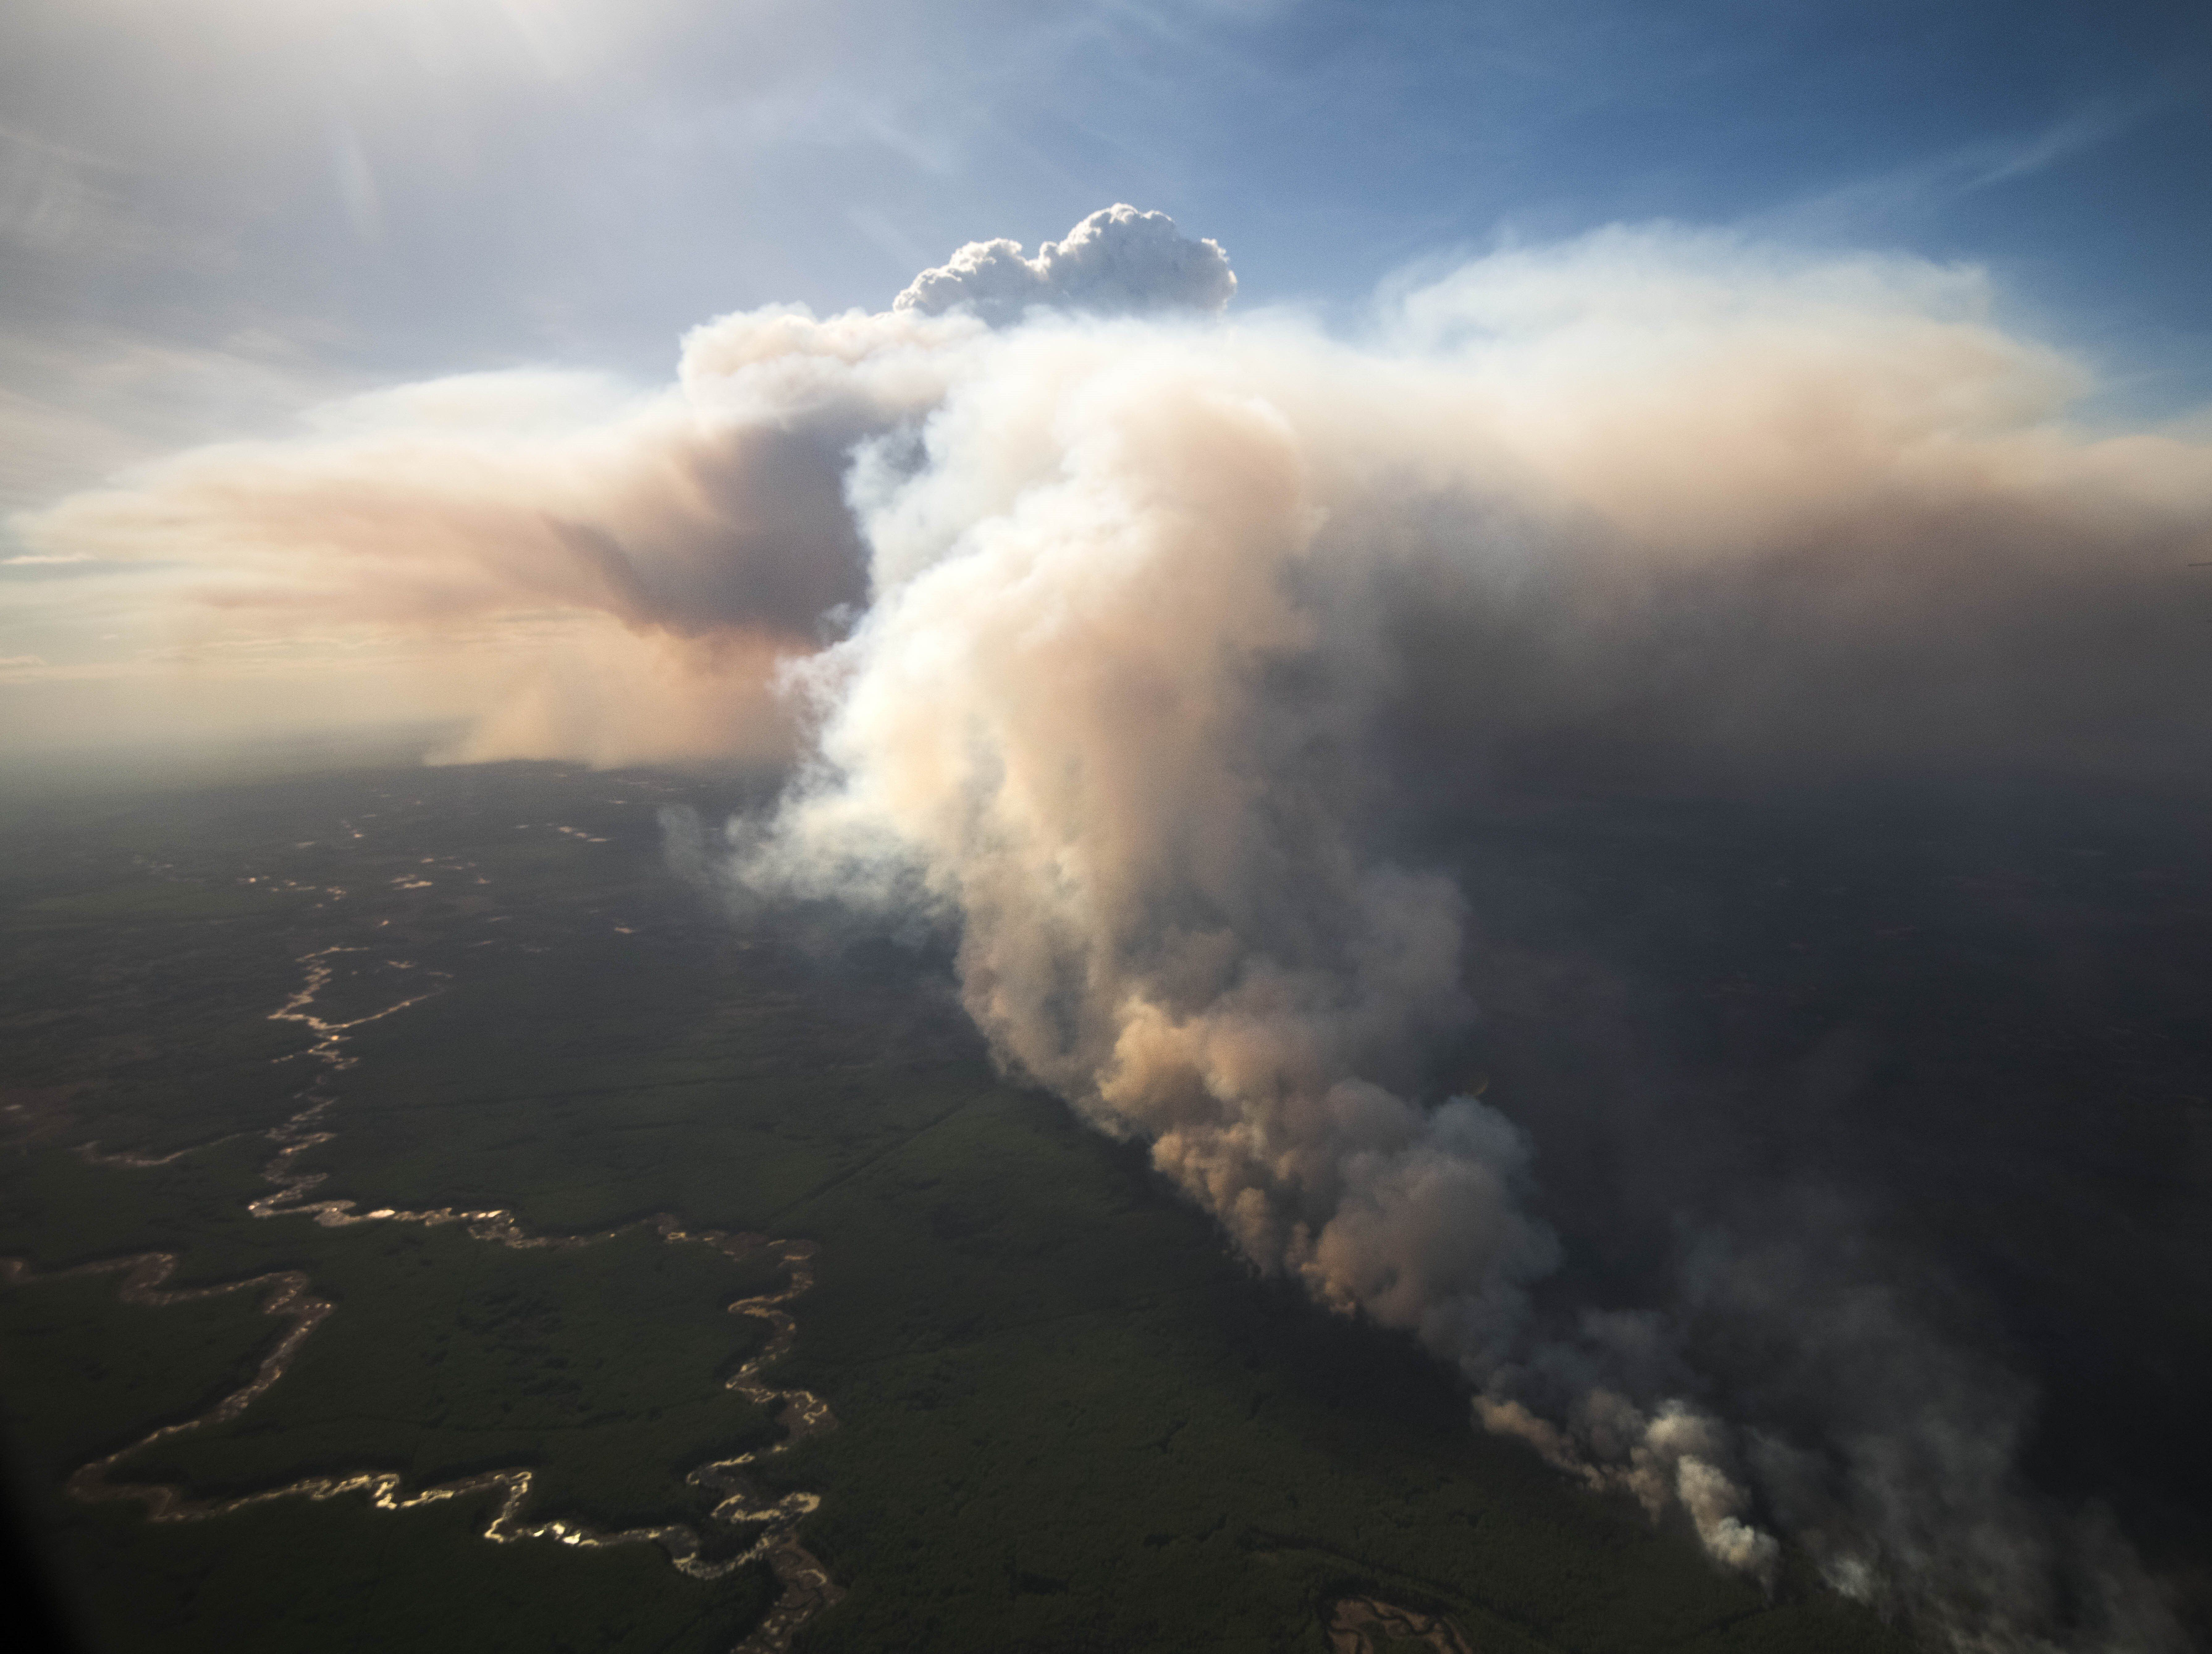 Alberta Town Fights Fire With Fire To Contain Out-Of-Control